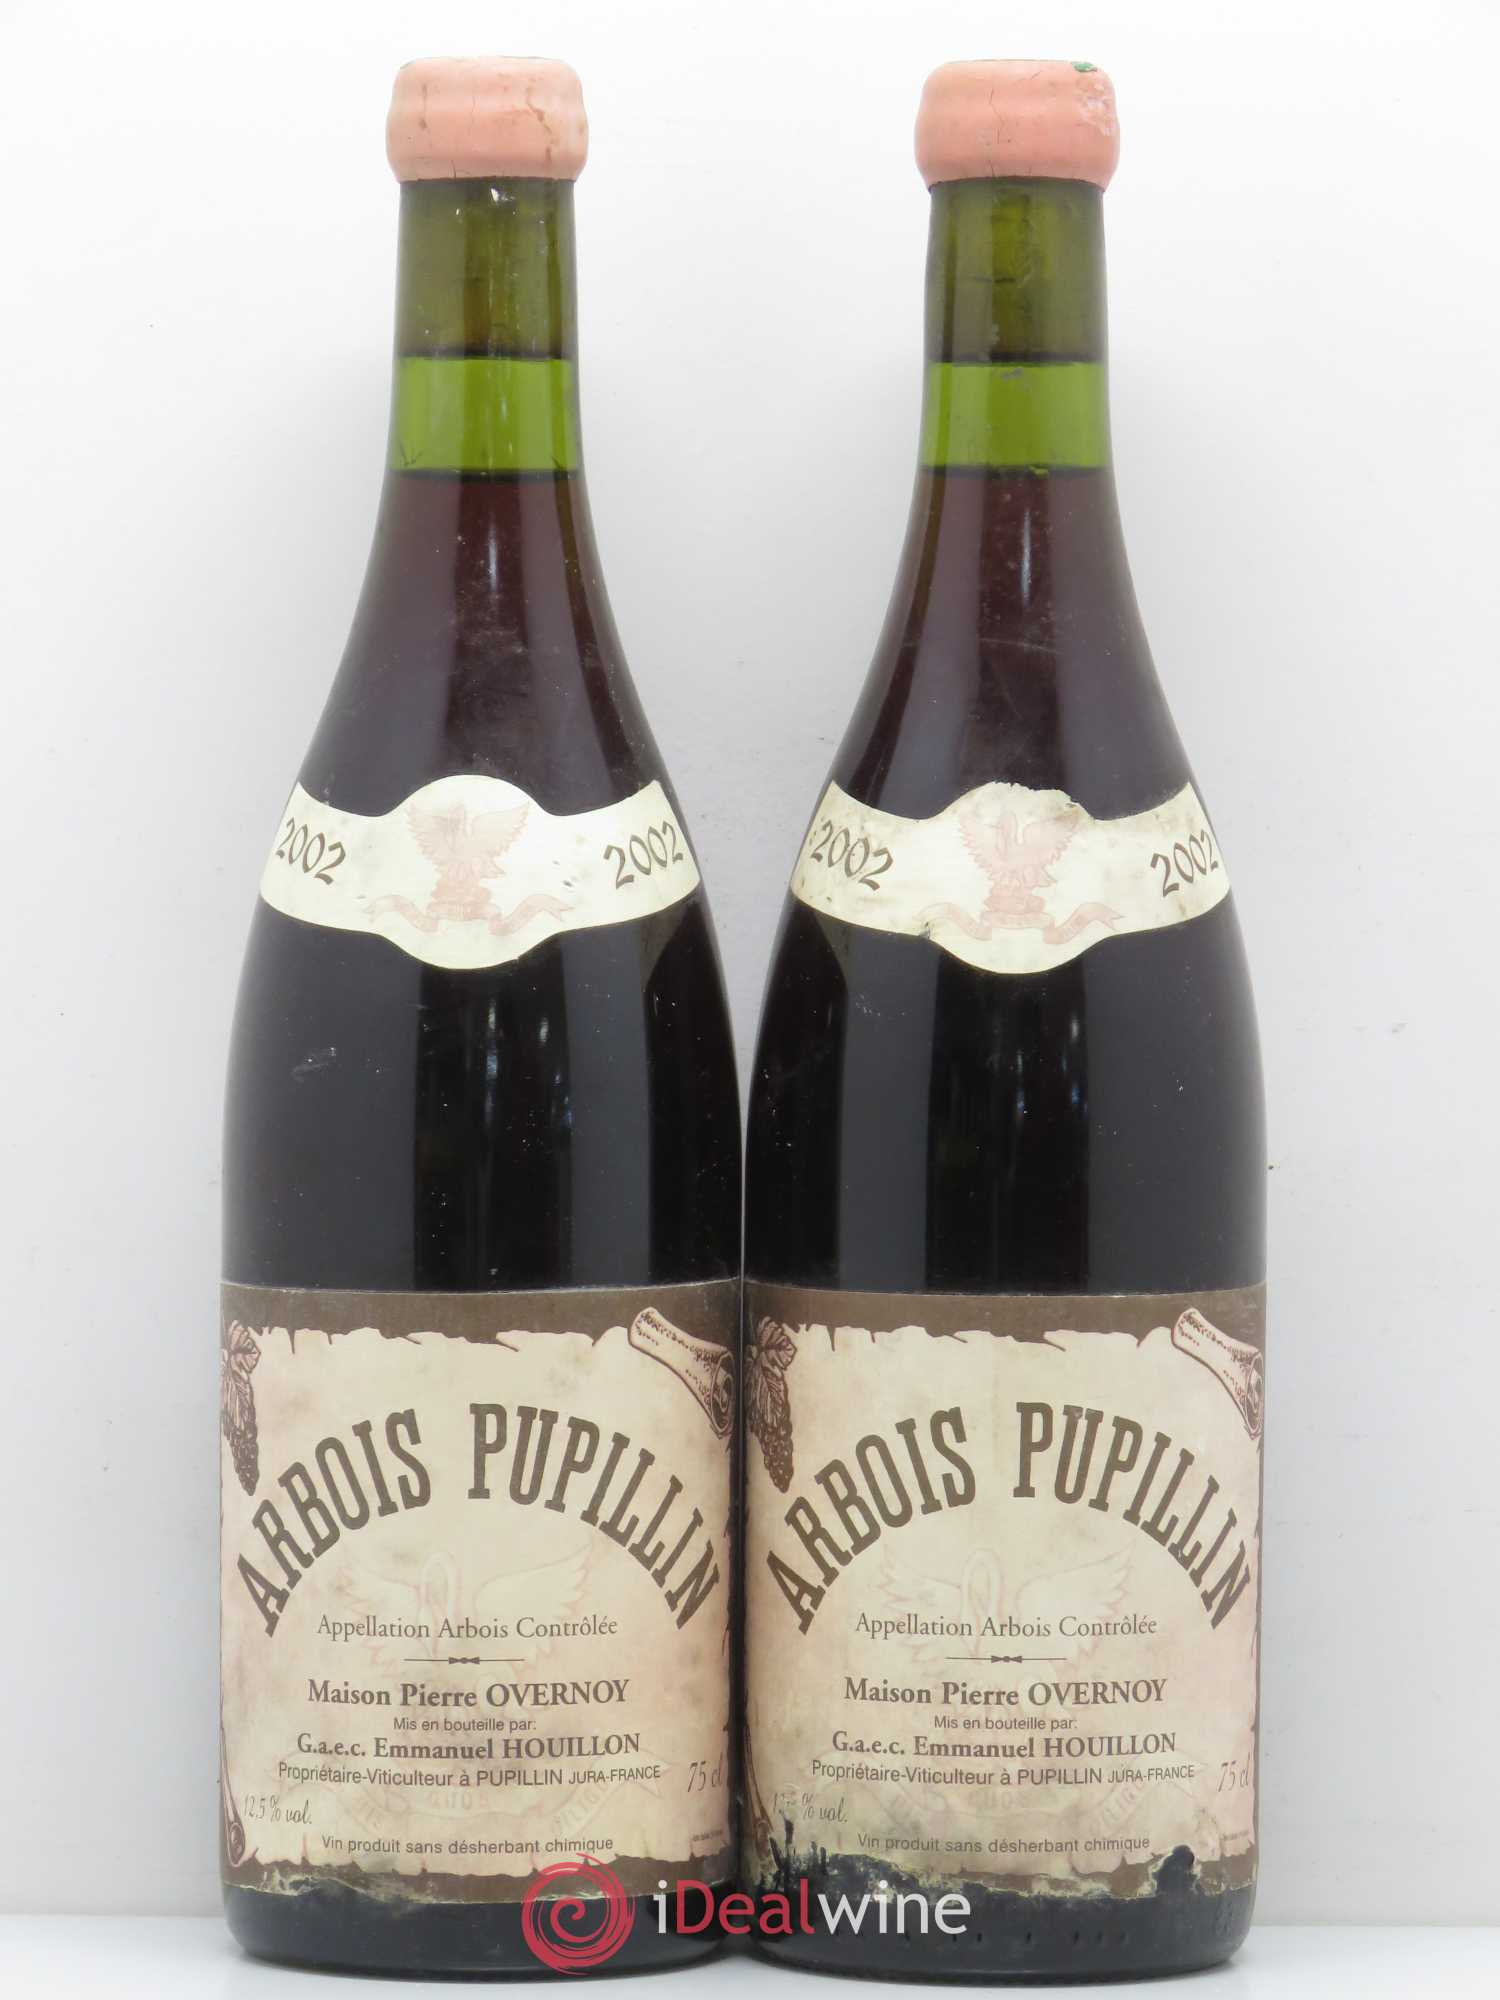 Arbois Pupillin Pierre Overnoy (Domaine)  2002 - Lot of 2 Bottles